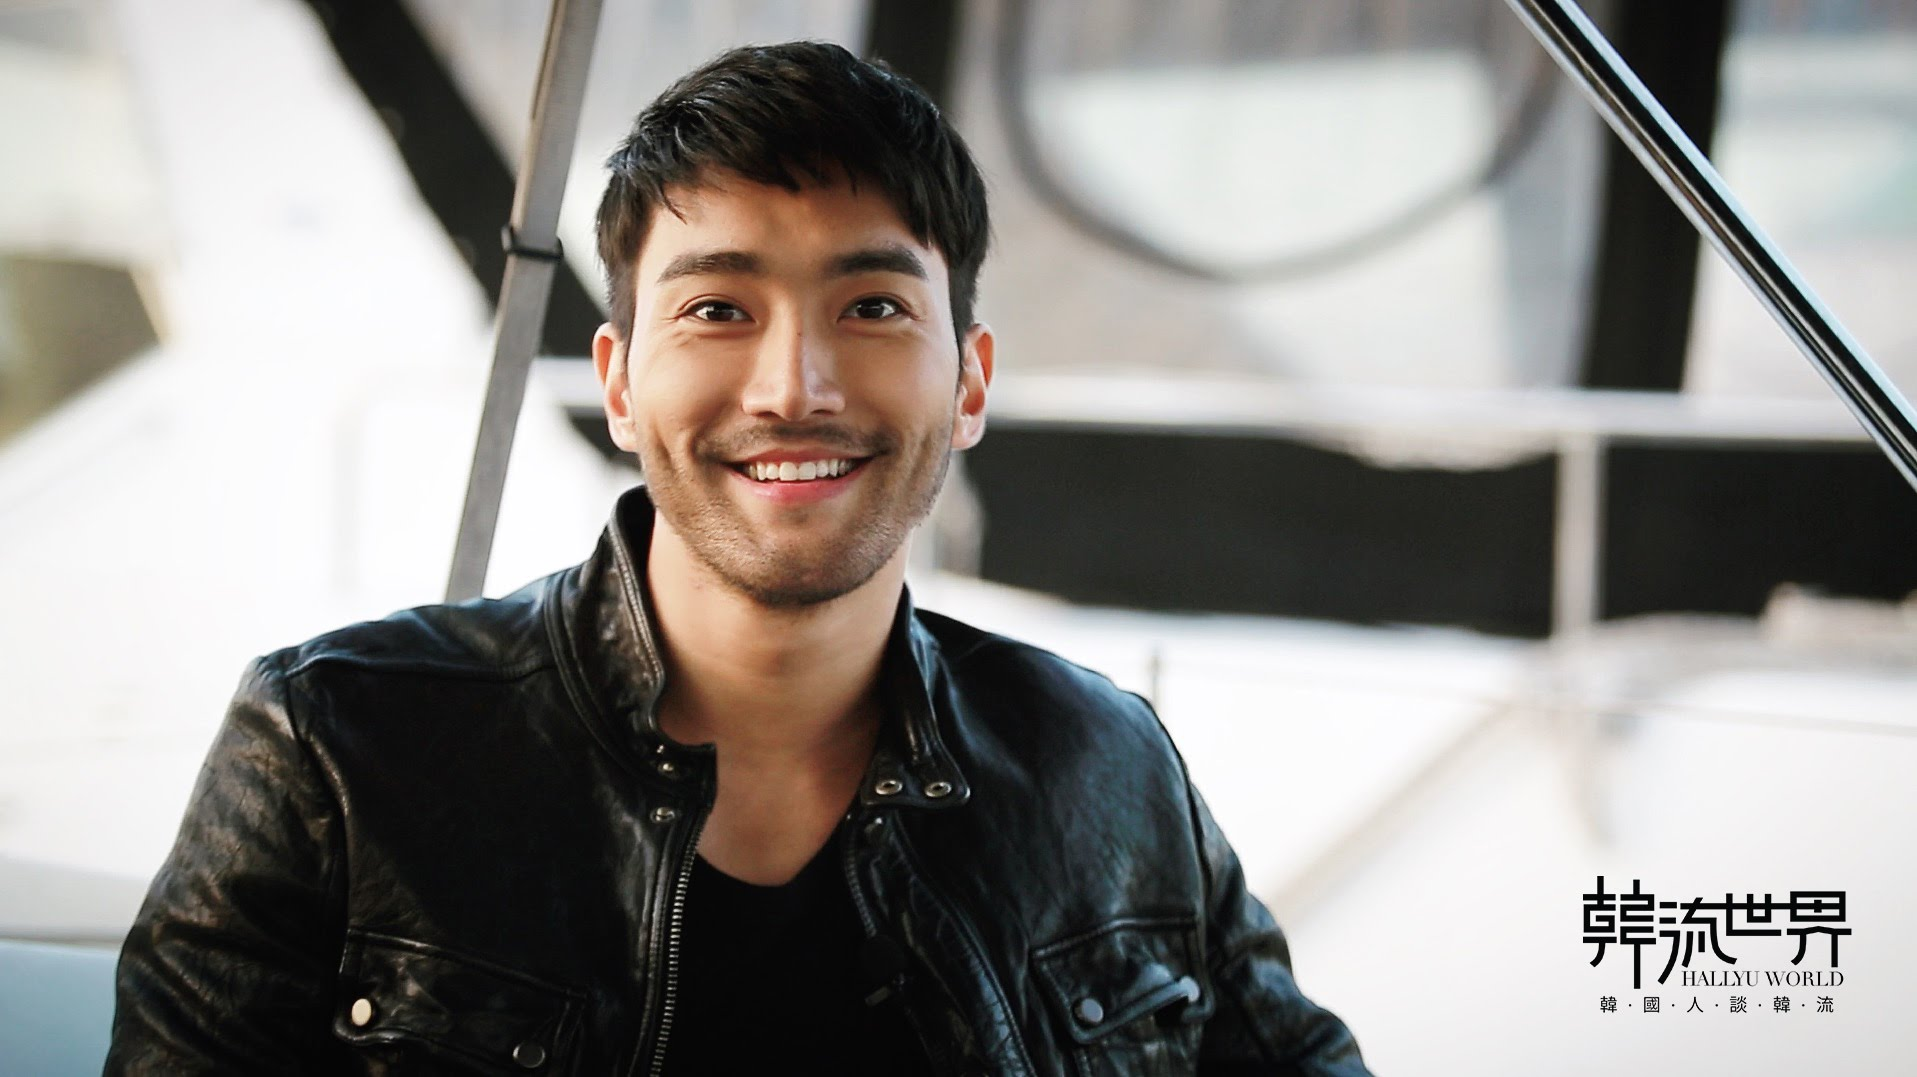 Super Juniors Choi Siwon Shows Gratitude For The Support Hes Received In His Return To Social Media